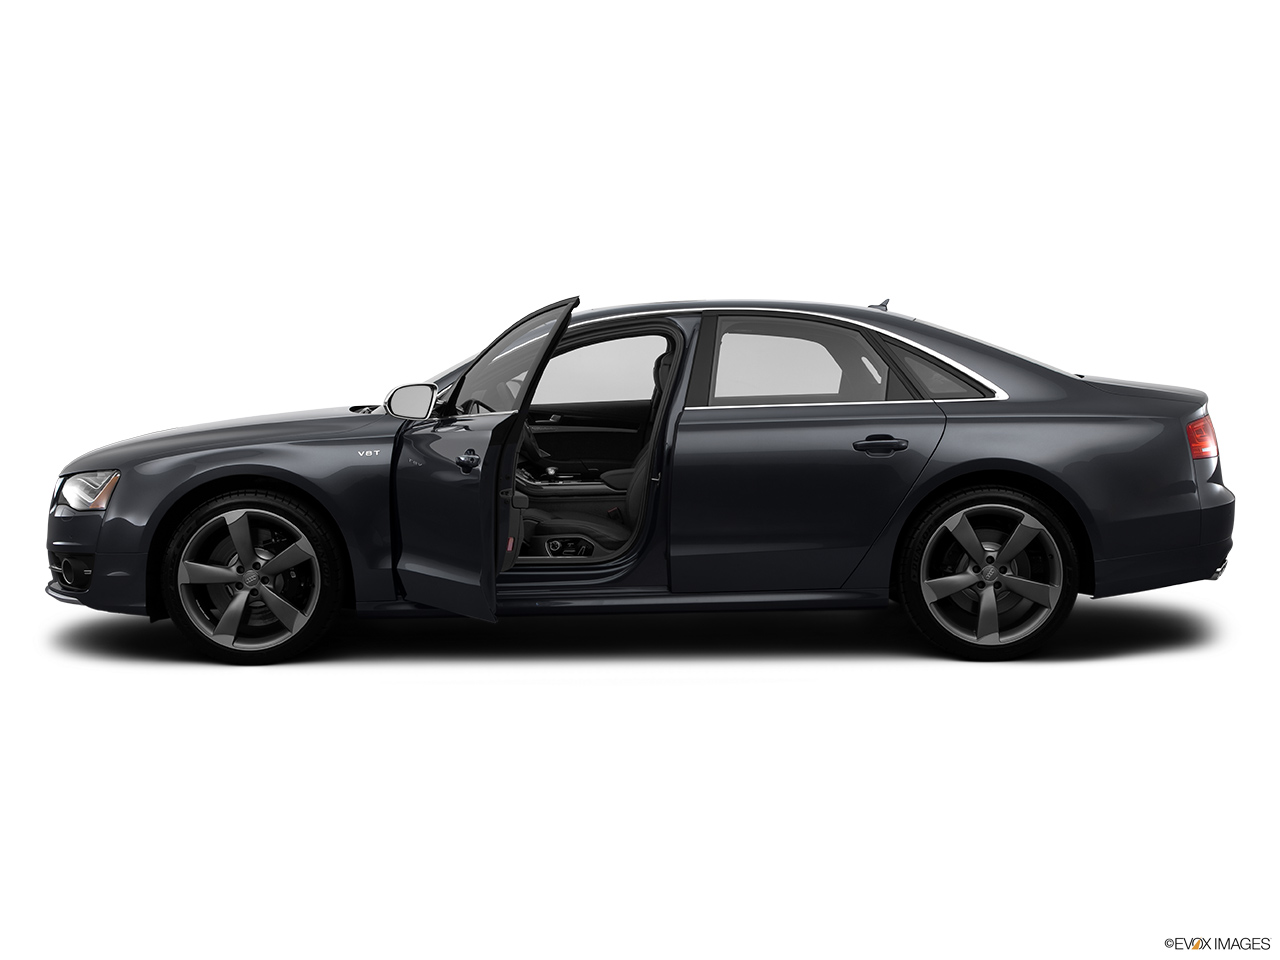 2014 Audi S8 4.0 TFSI Driver's side profile with drivers side door open.